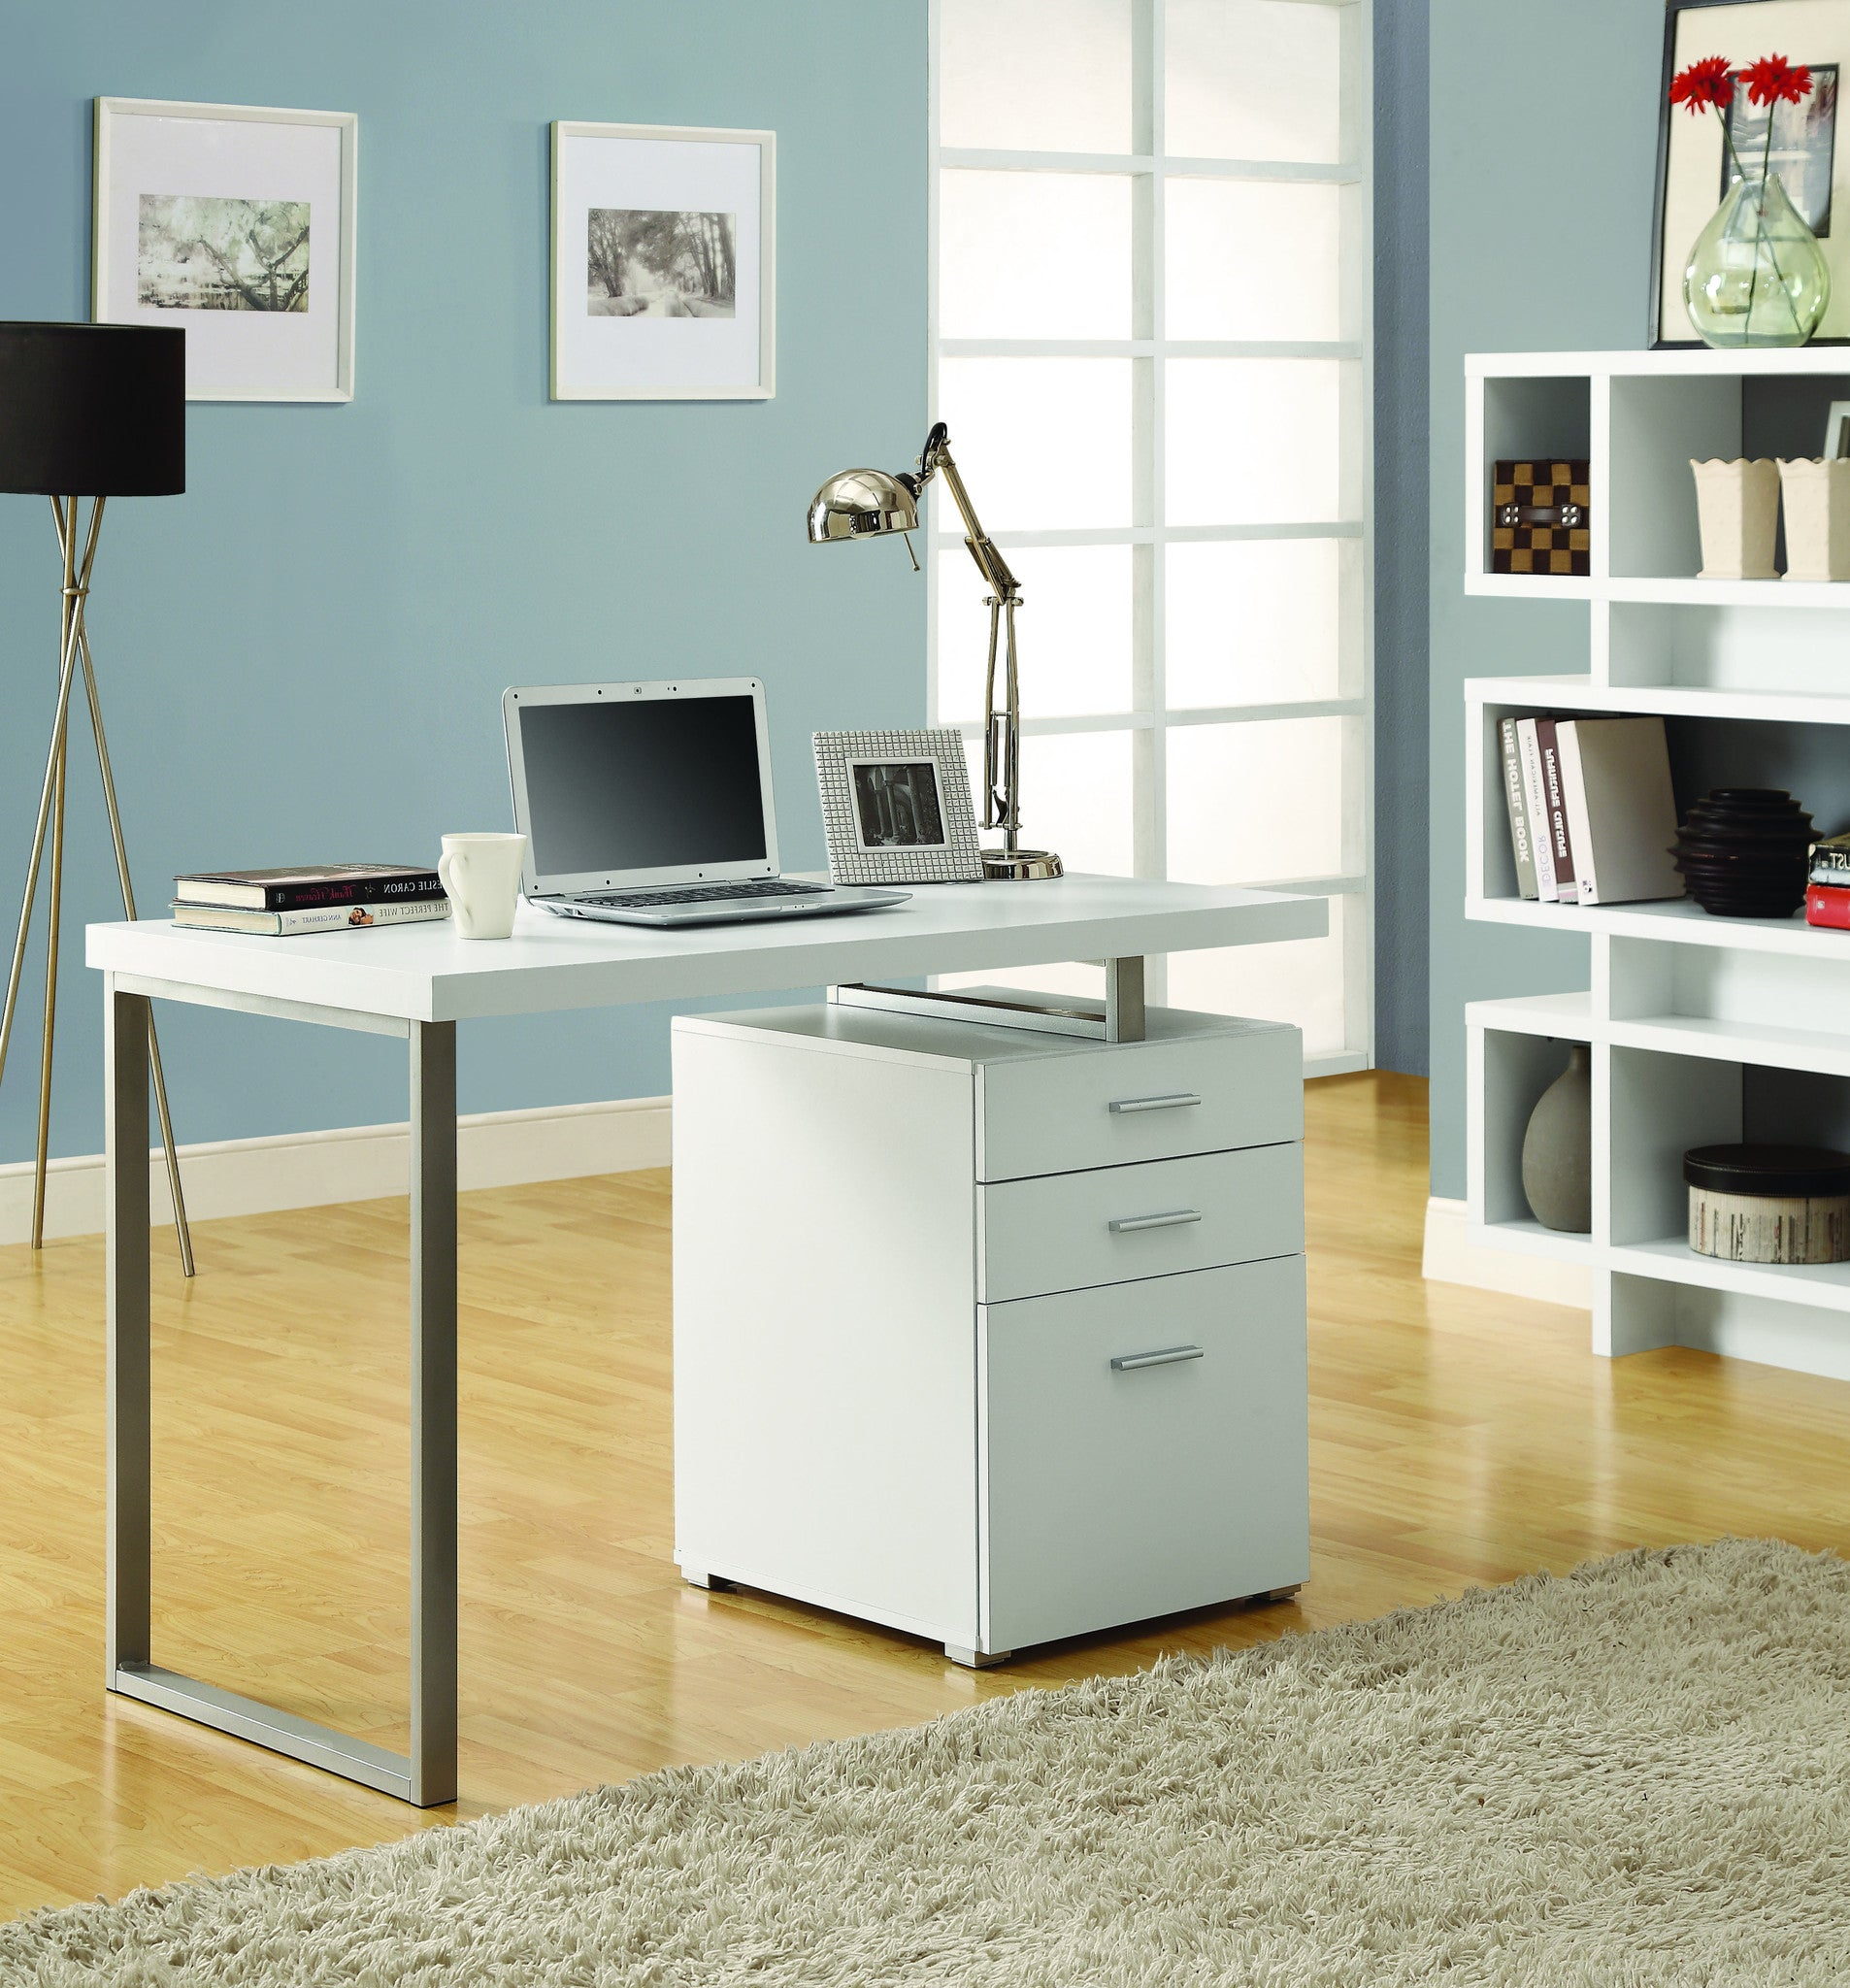 Desk Overstock 100 City Office Furniture Office Design Furniture Installat 68 Cami White 3